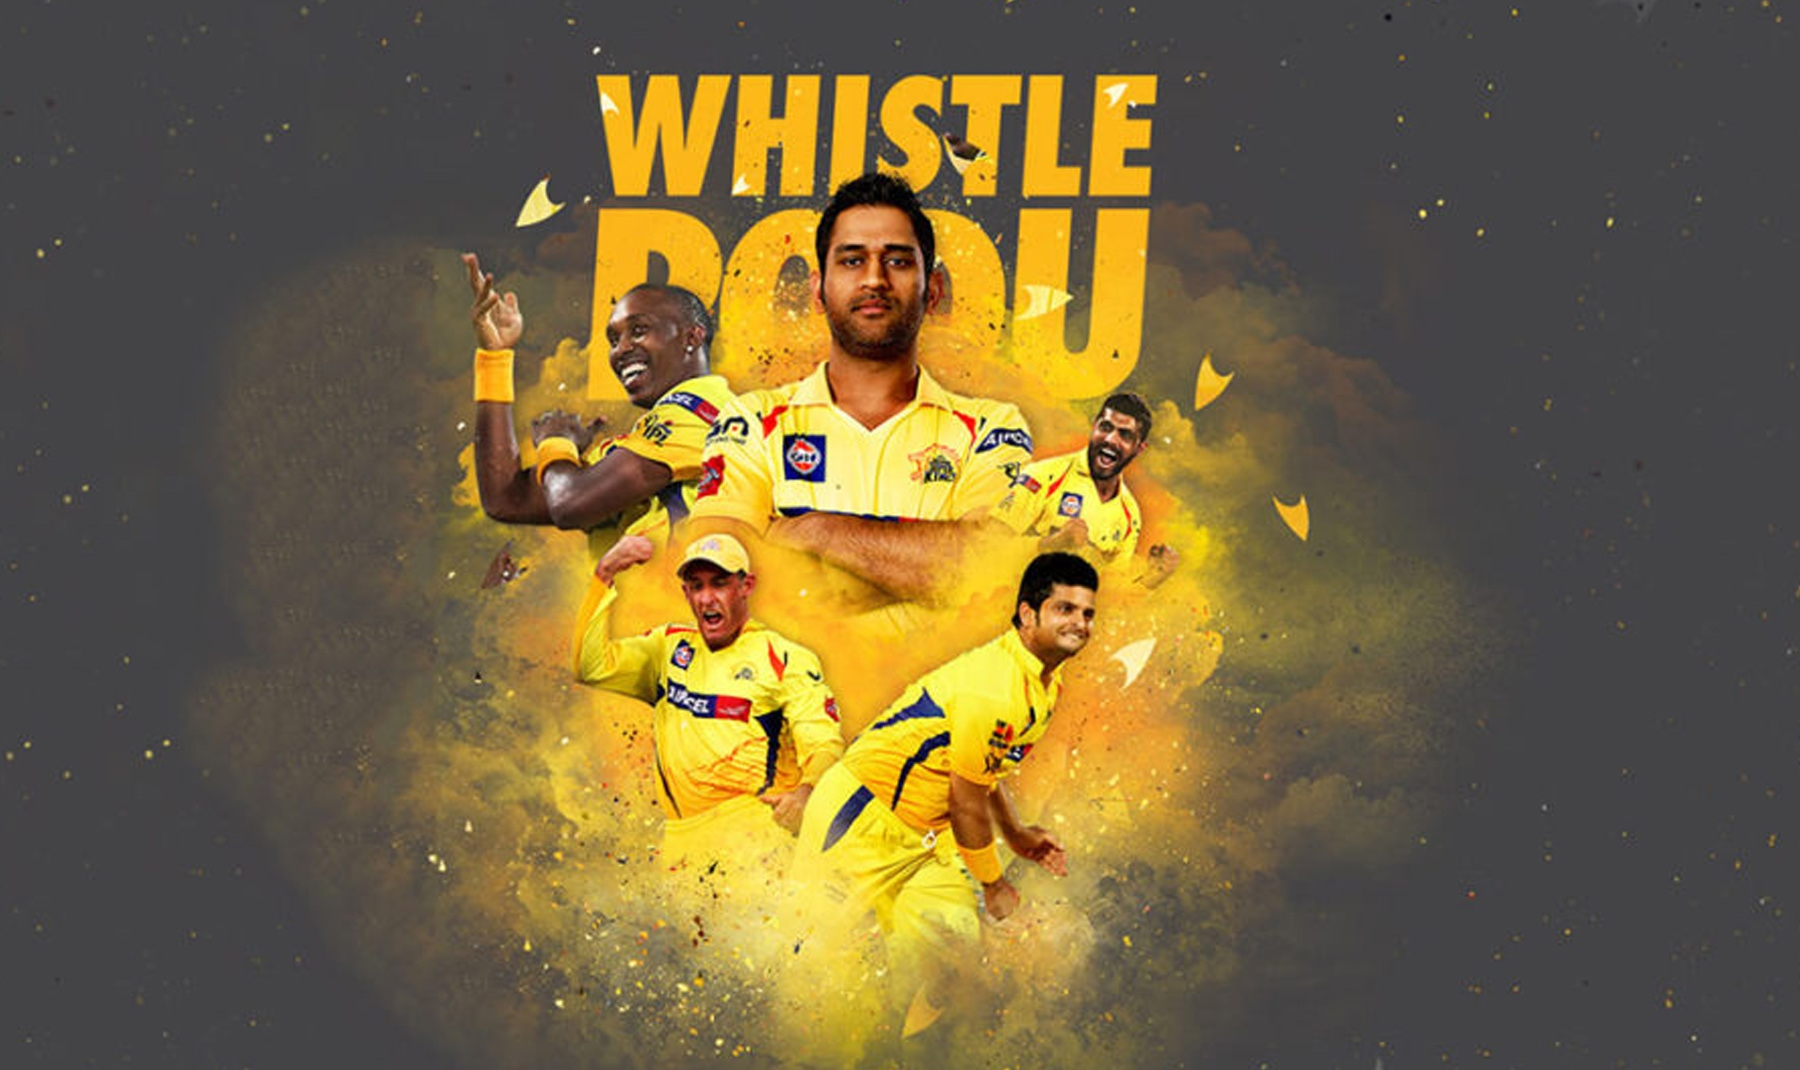 These Are The Photos From Barbi s Camera Taken At Barbi s June Chennai super kings pictures